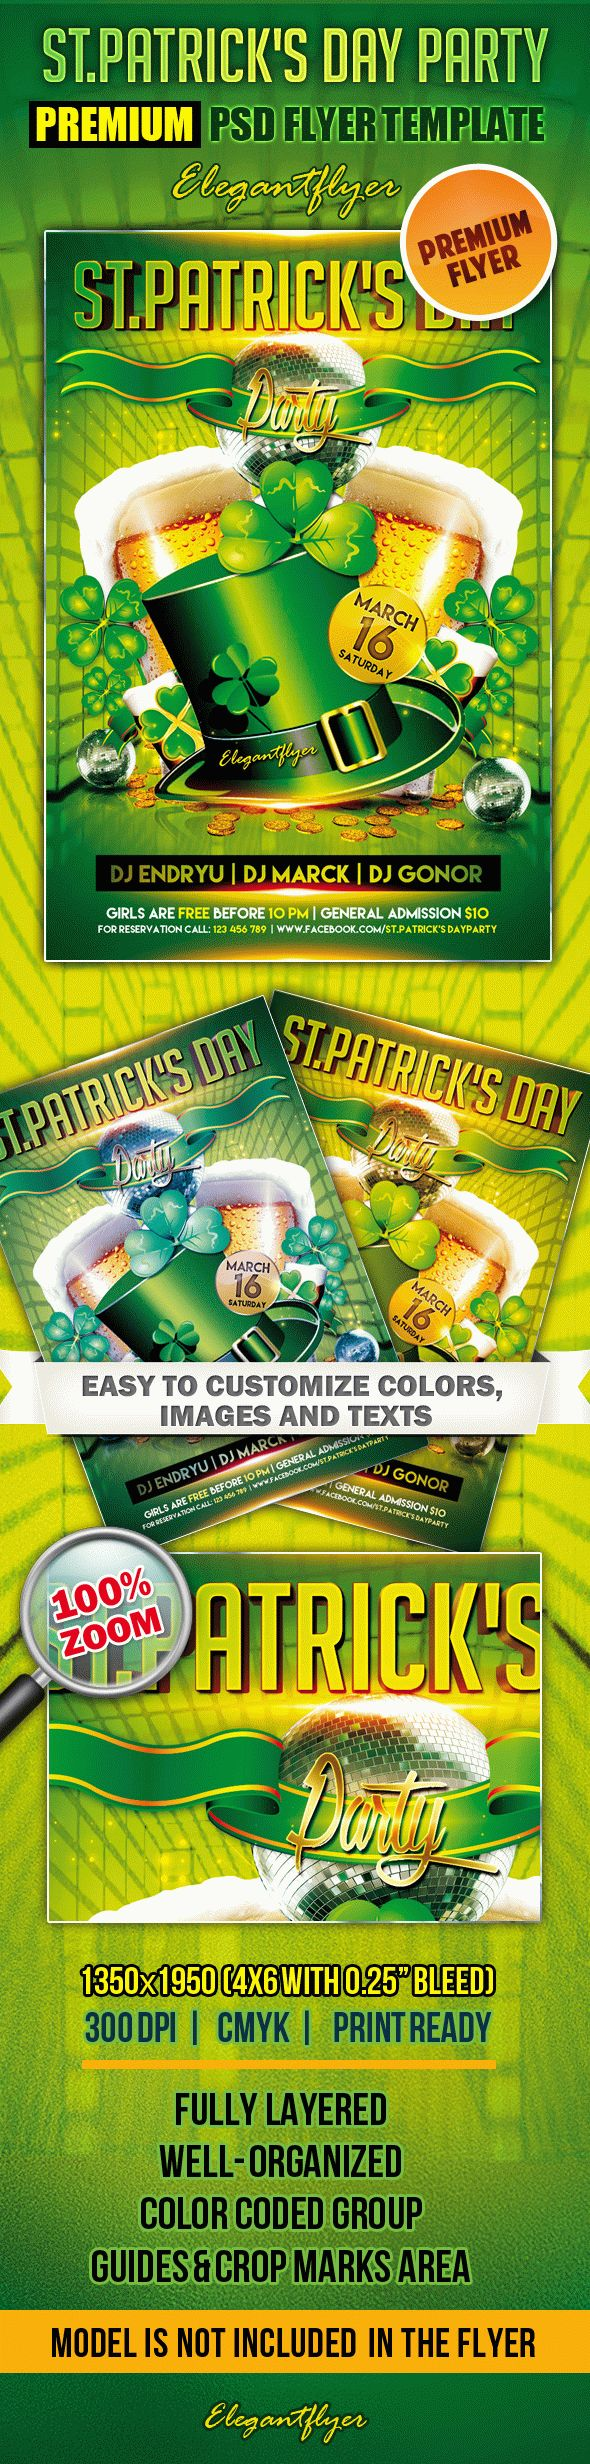 st patrick u2019s day party 2  u2013 premium club flyer psd template